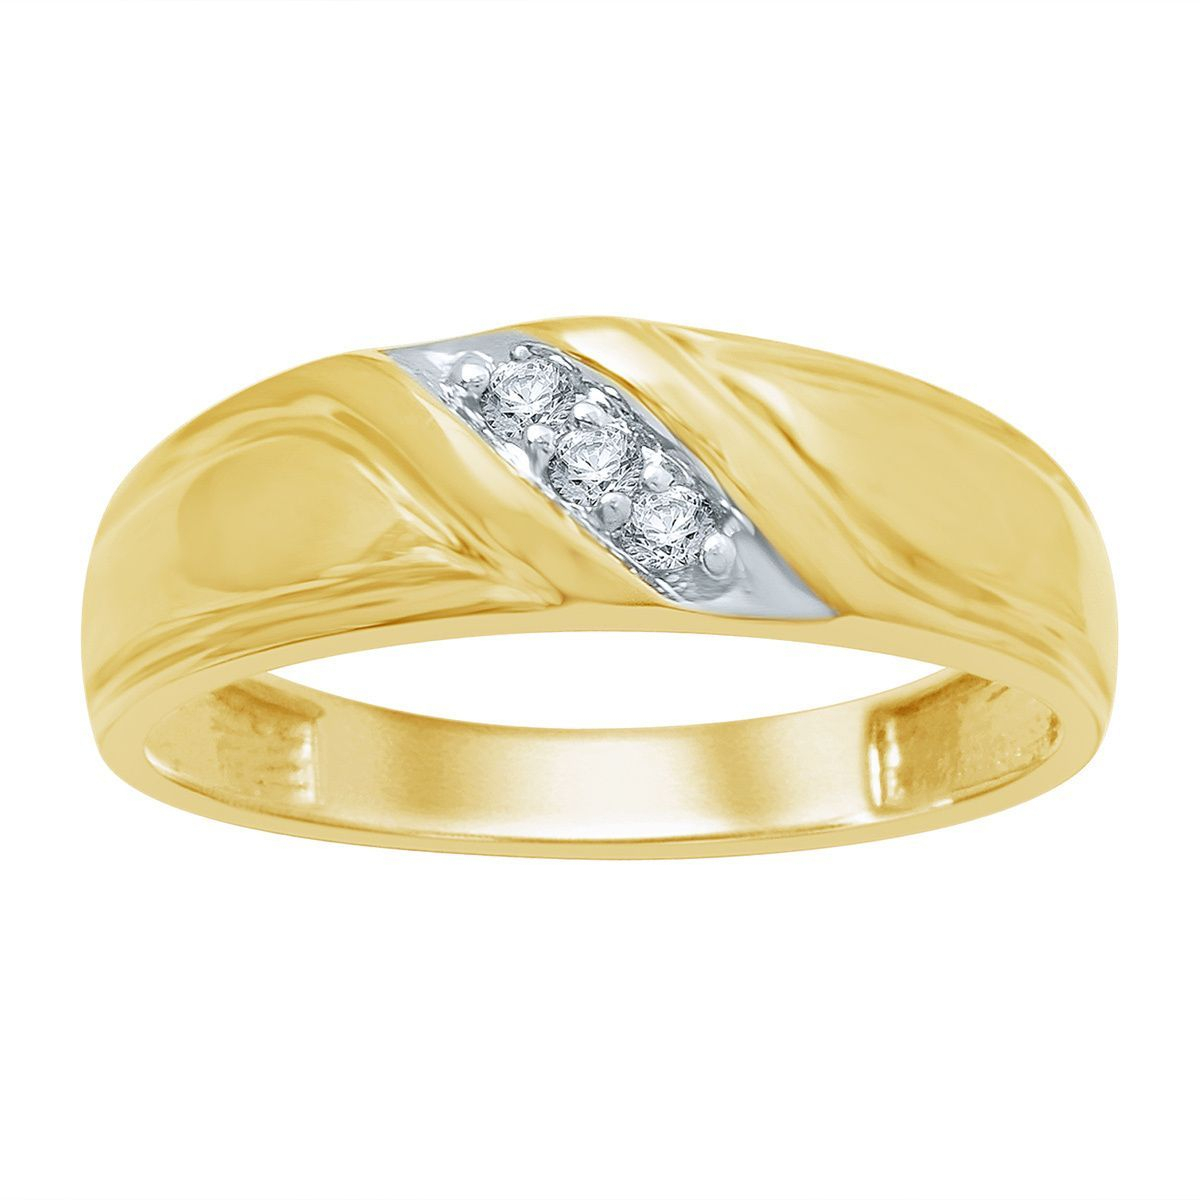 Unending Love 10K Yellow Gold Men's 1/10Ct Tdw Diamond Slant Pertaining To Newest Diamond Slant Anniversary Bands In White Gold (Gallery 12 of 25)